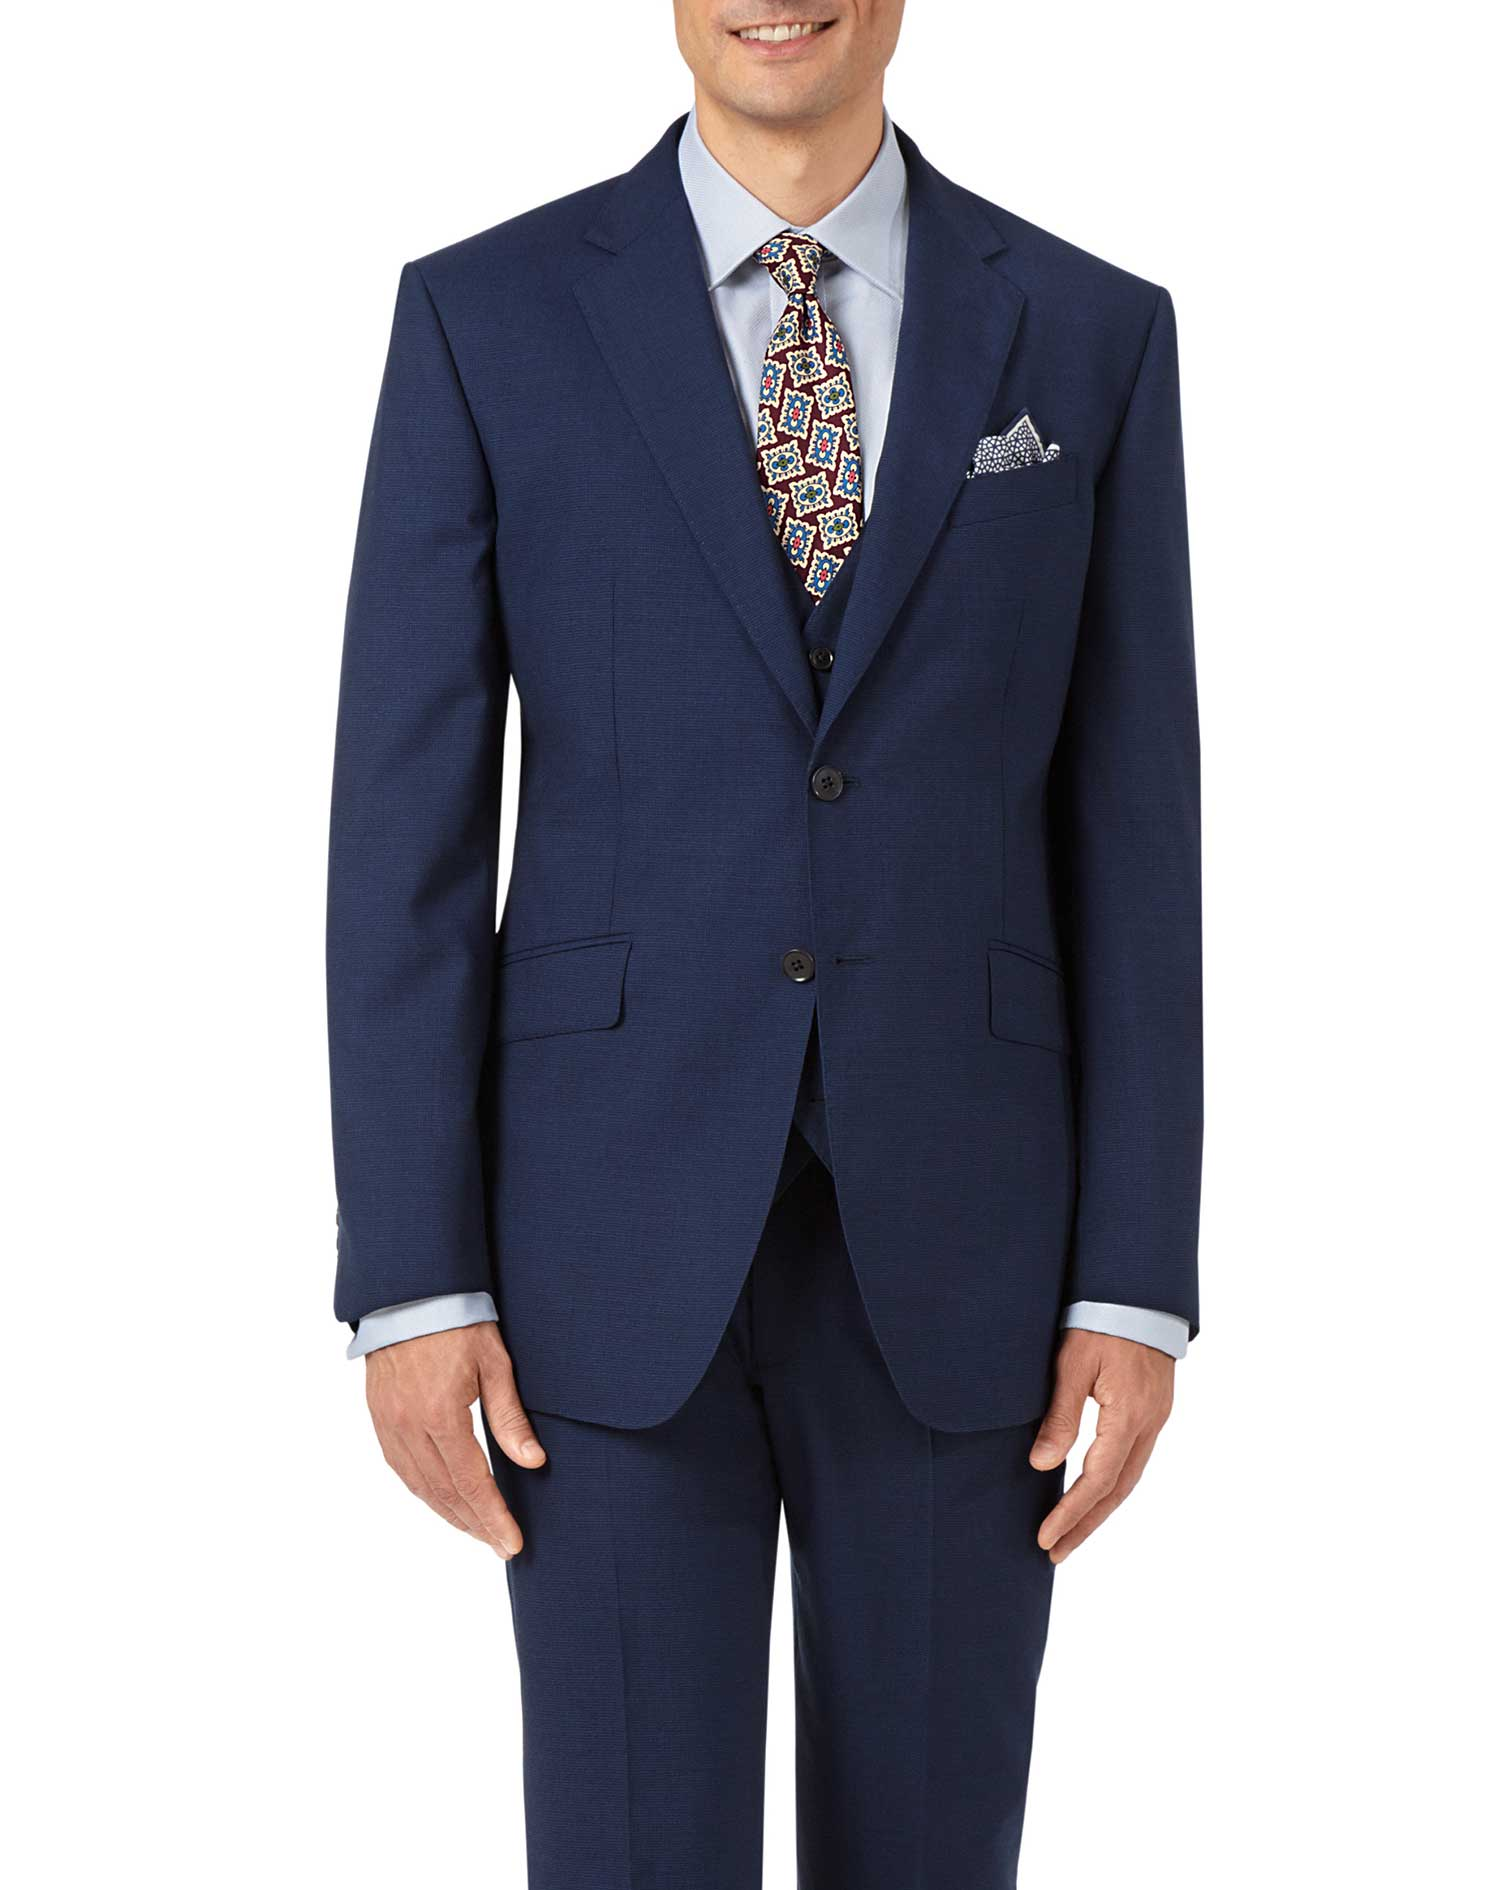 Indigo Blue Slim Fit Panama Puppytooth Business Suit Wool Jacket Size 36 Short by Charles Tyrwhitt